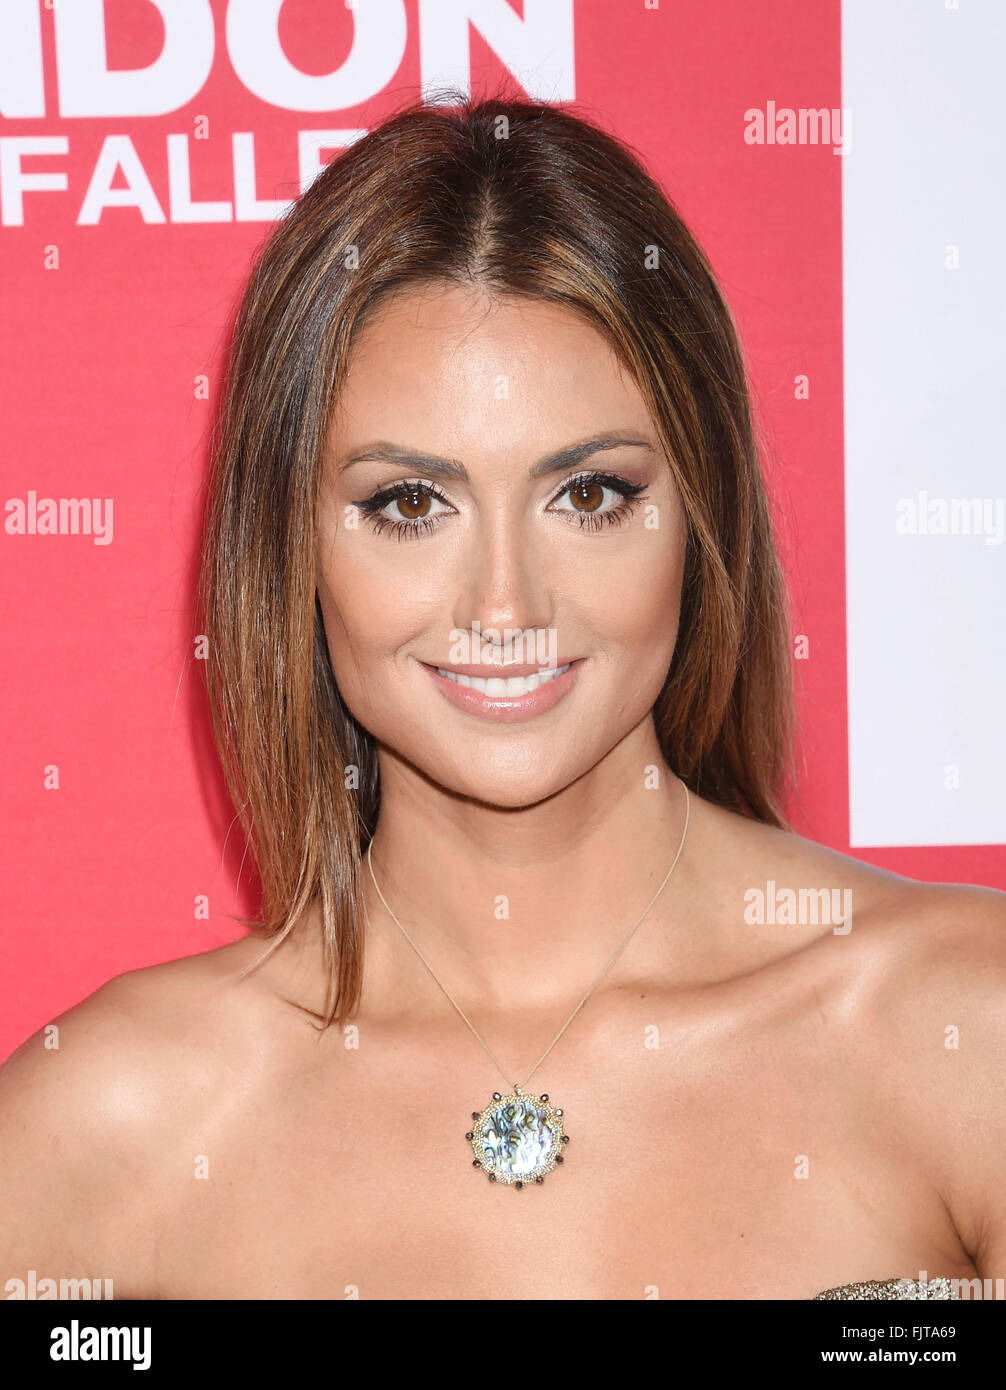 Katie Cleary Stock Photos Katie Cleary Stock Images Alamy -> Sala De Tv Jeff